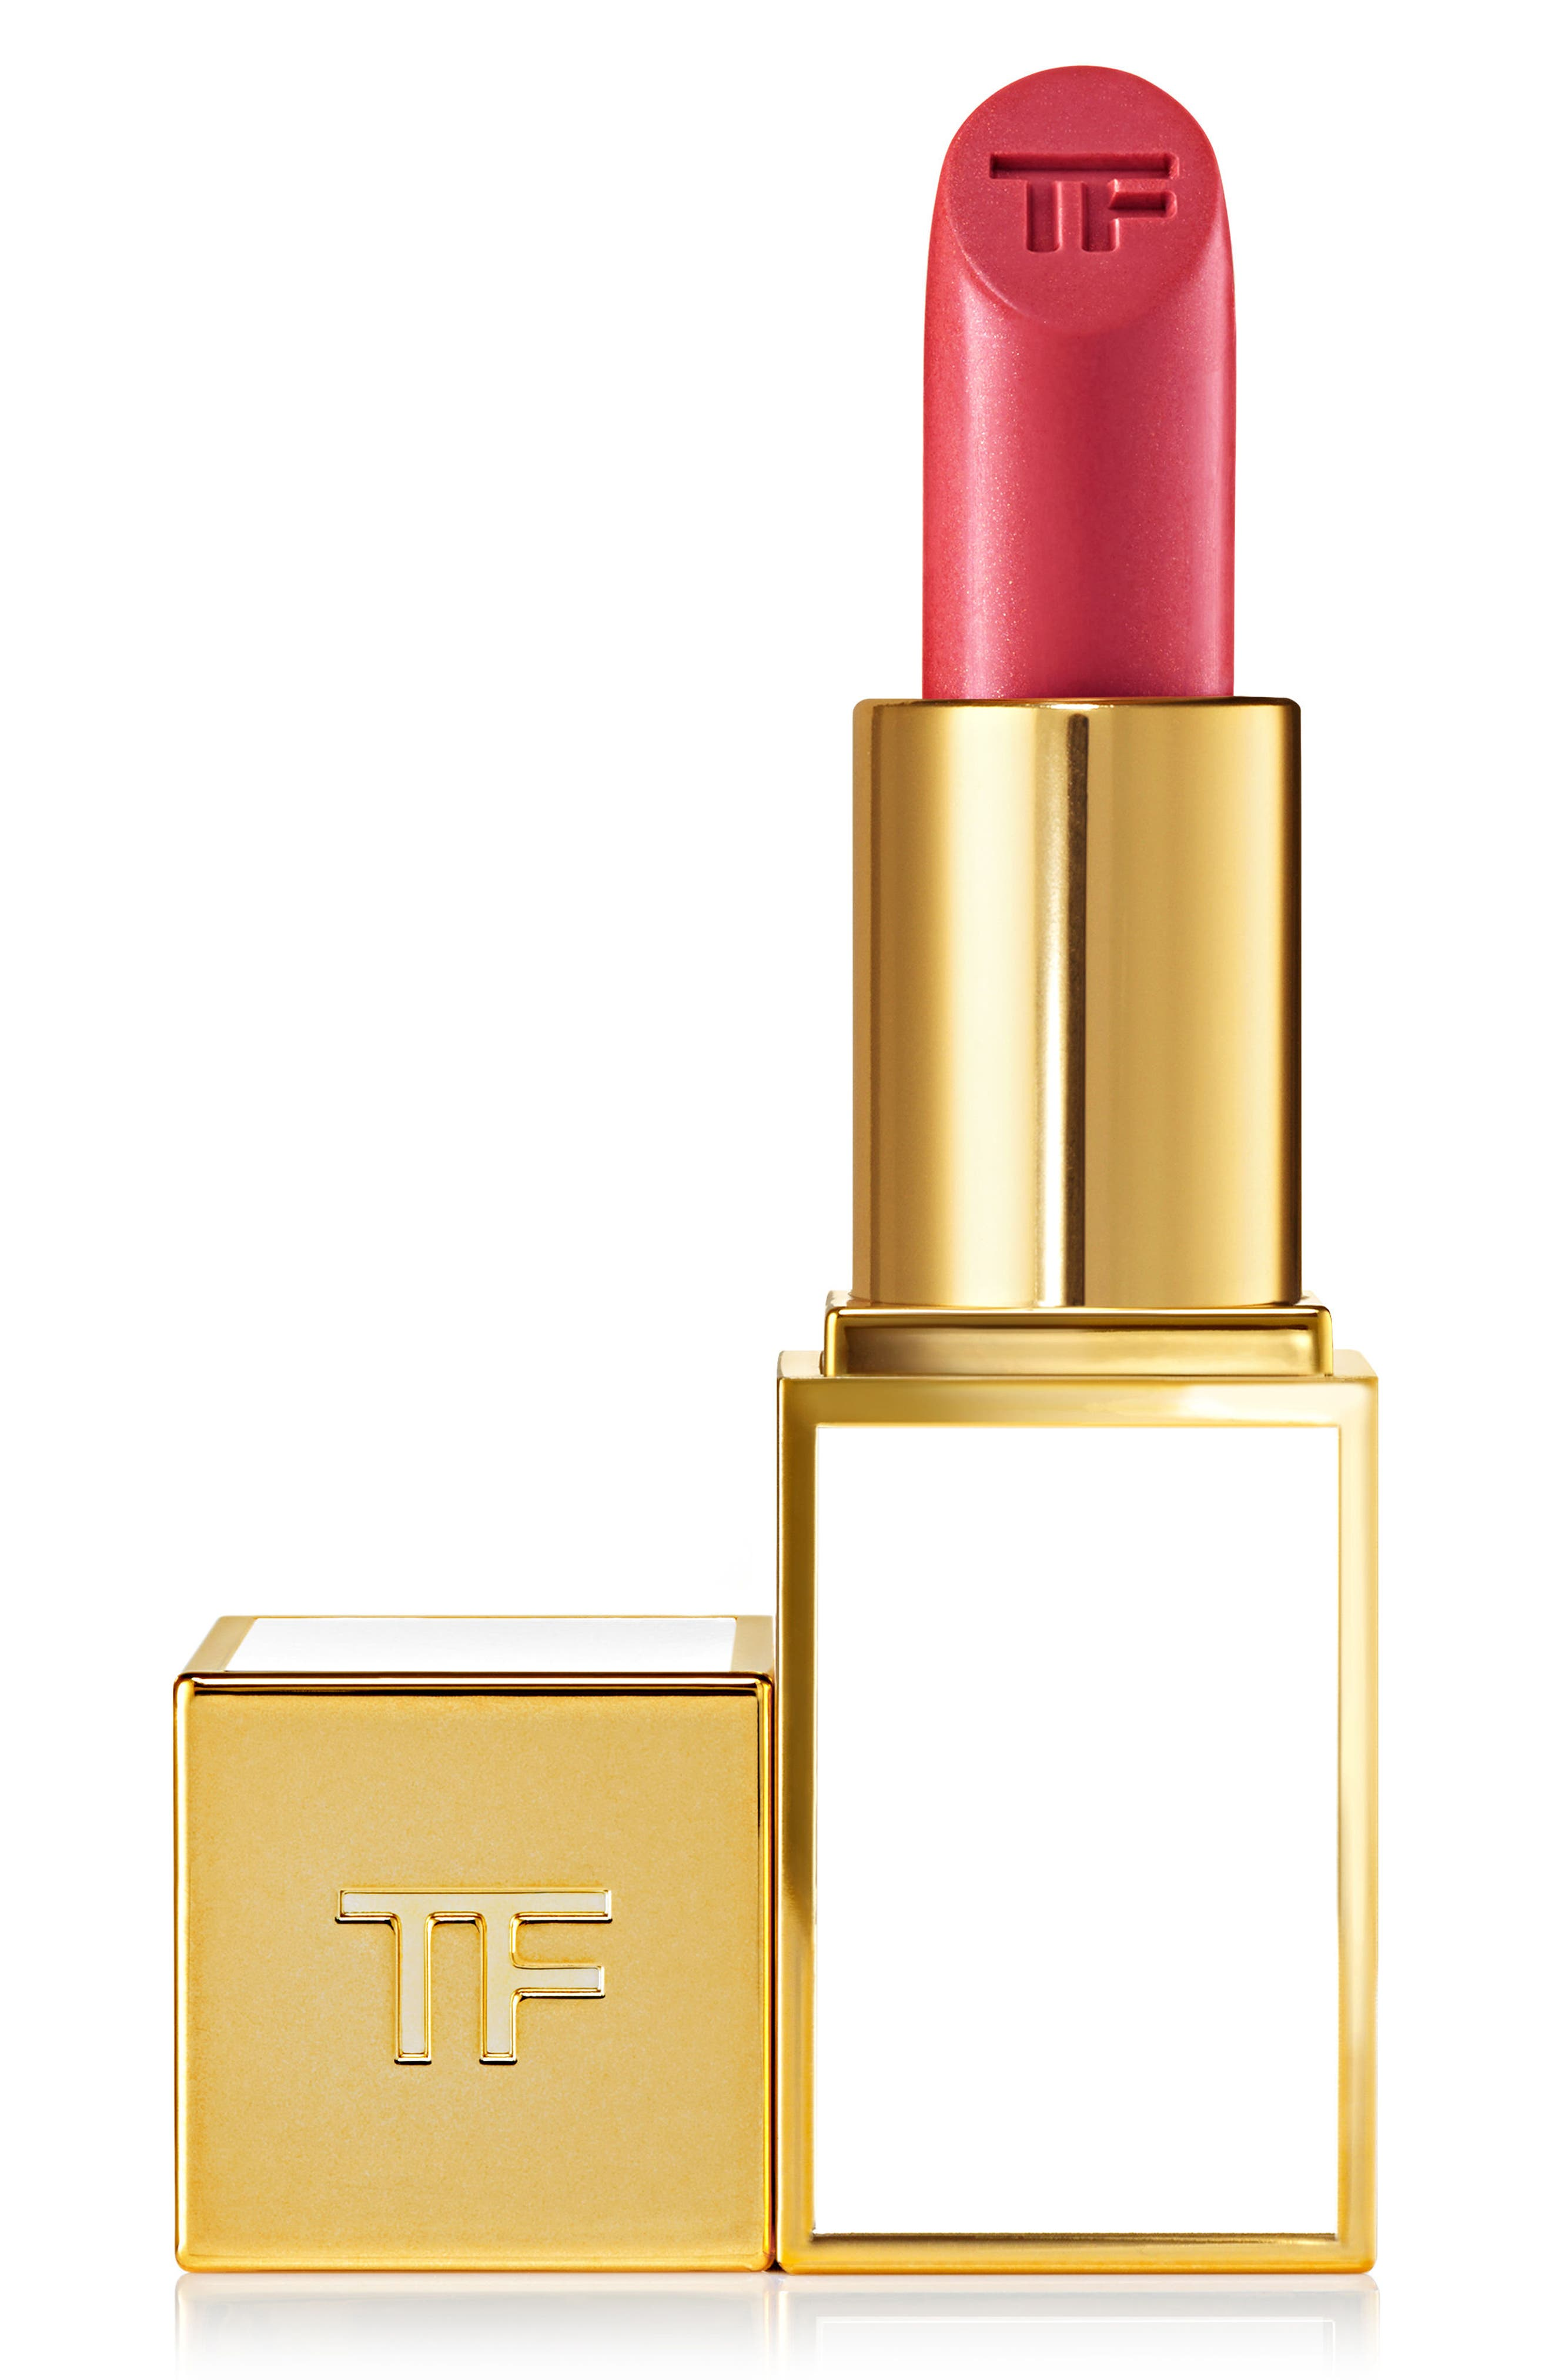 Main Image - Tom Ford Boys & Girls Lip Color - The Girls (Limited Edition)